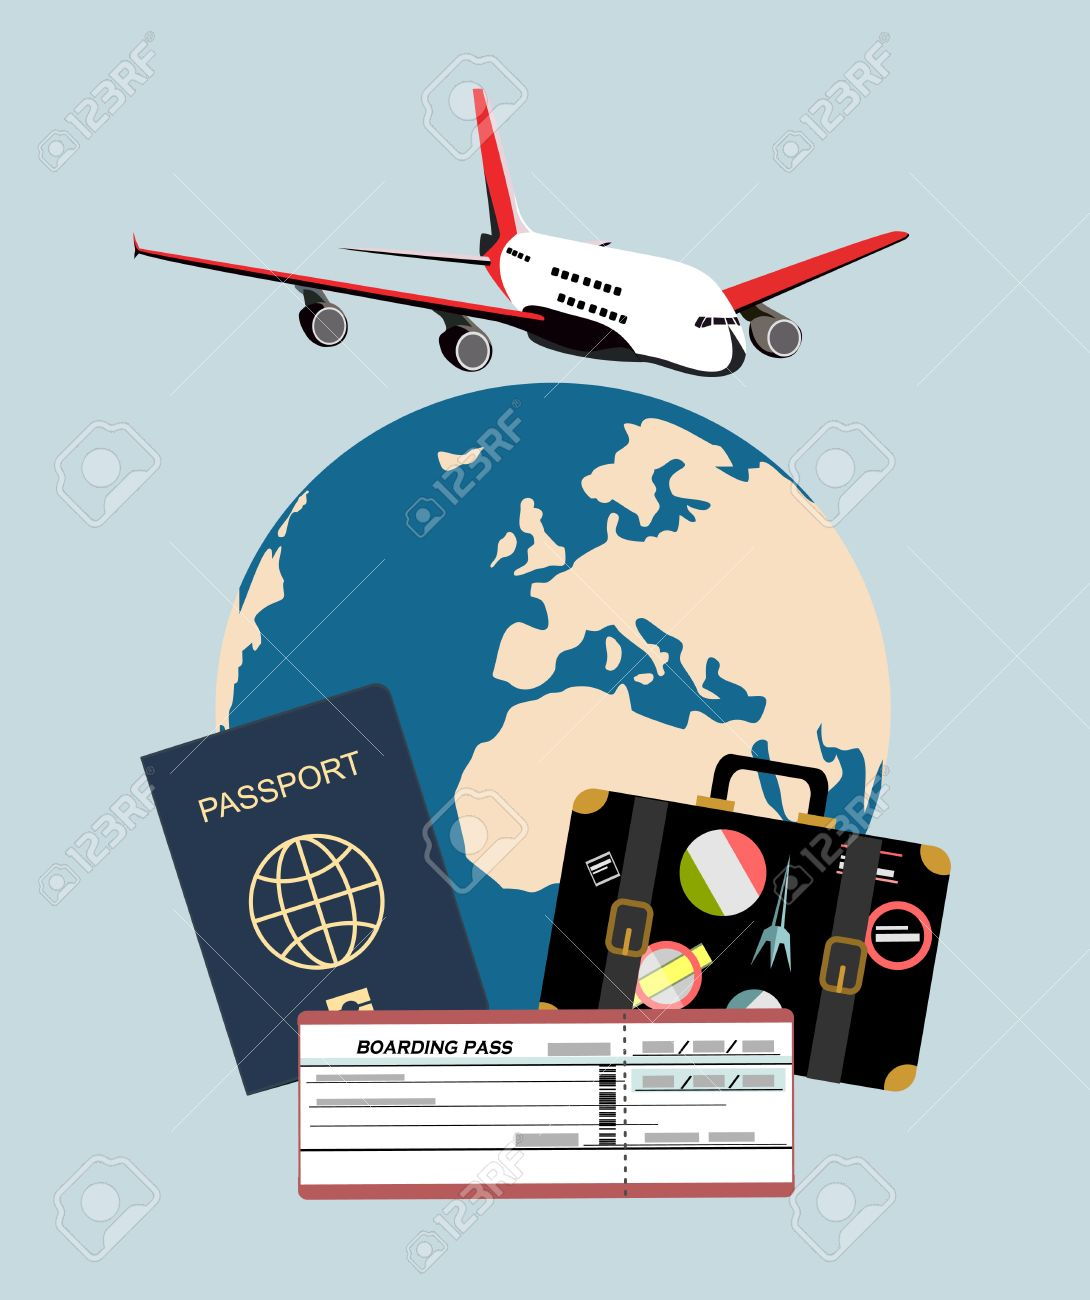 Travel and tourism concept air tickets passports and travel travel and tourism concept air tickets passports and travel suitcase with funky stickers and gumiabroncs Choice Image